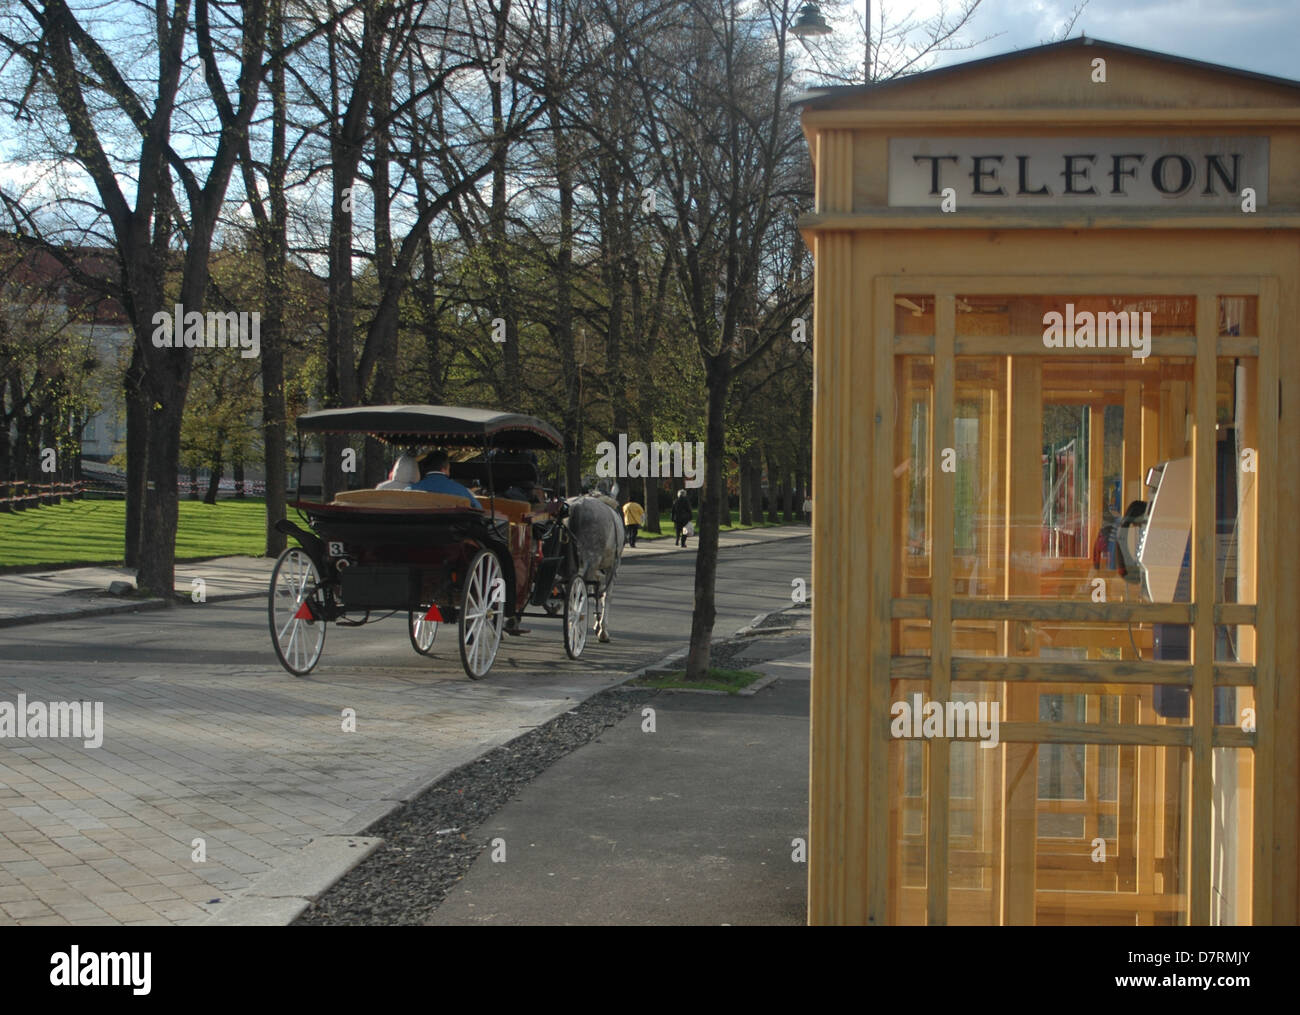 Old style telephone kiosk and a horse cart in Karlovy Vary, Czech Republic, Europe - Stock Image